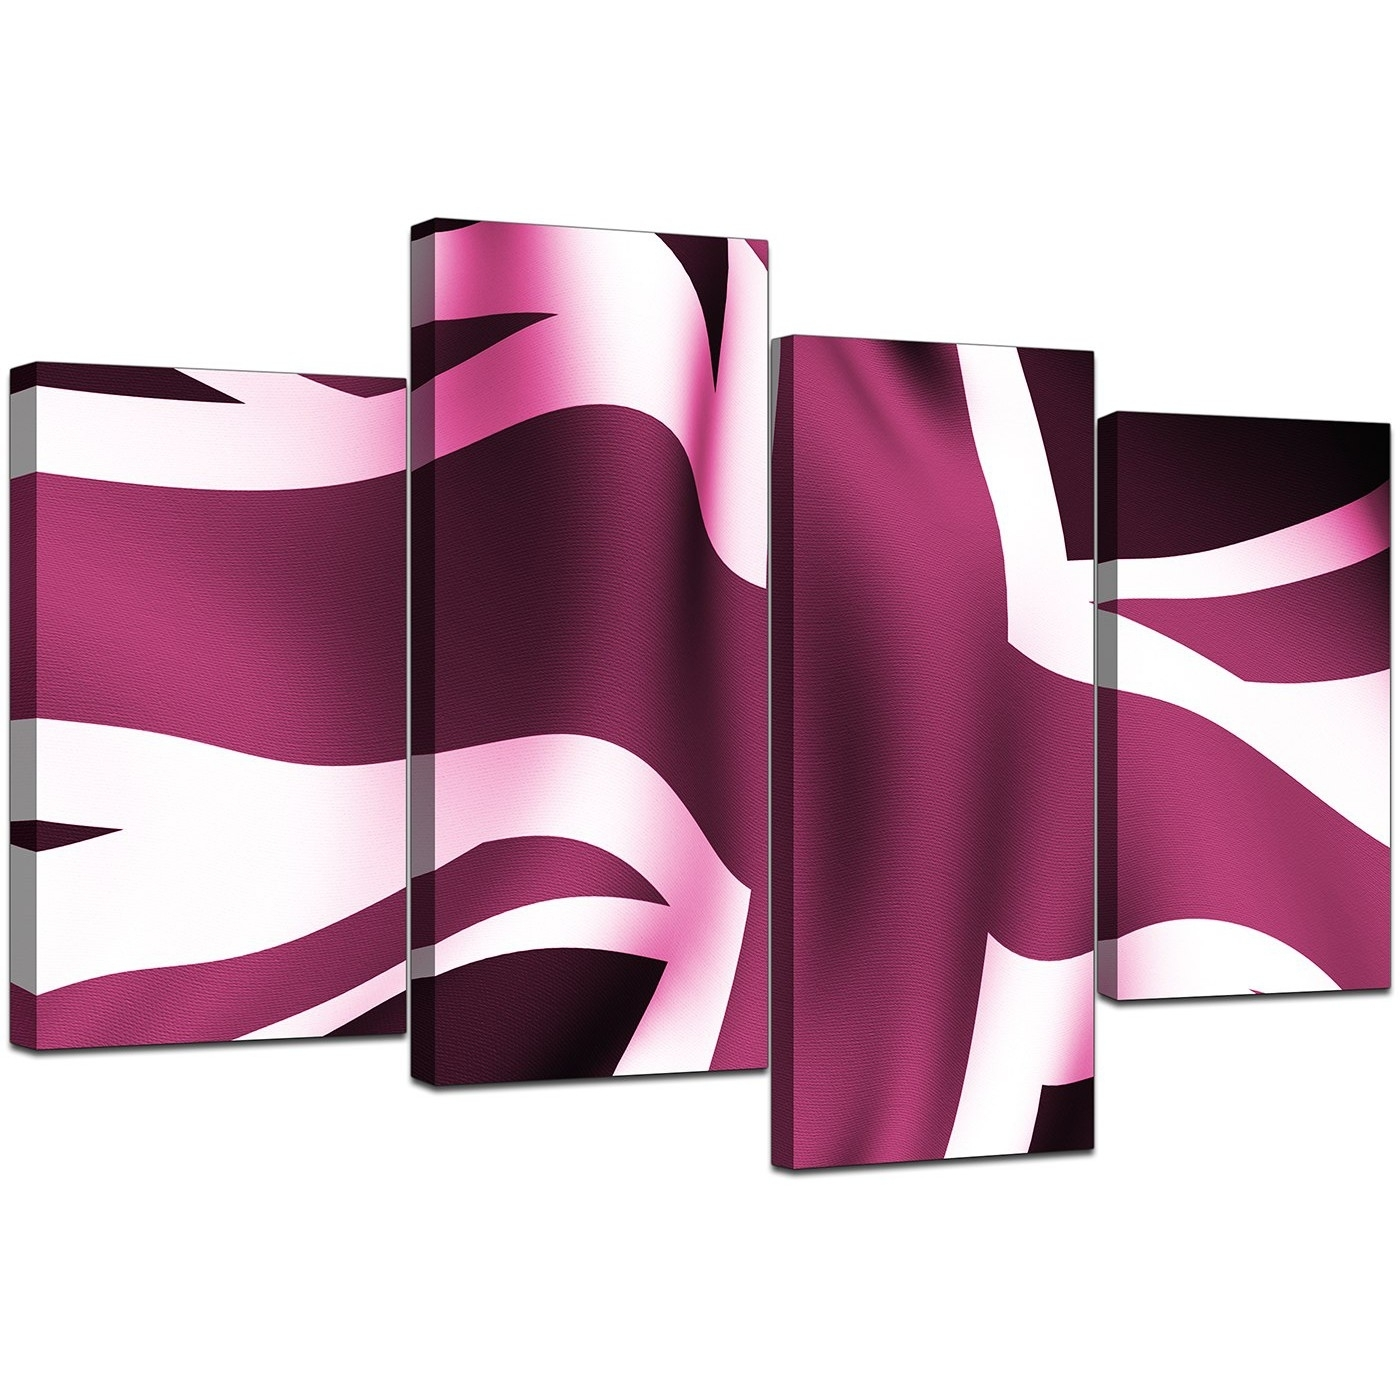 Modern Union Jack Canvas Prints In Plum – For Bedroom Regarding Most Recent Union Jack Canvas Wall Art (View 5 of 15)